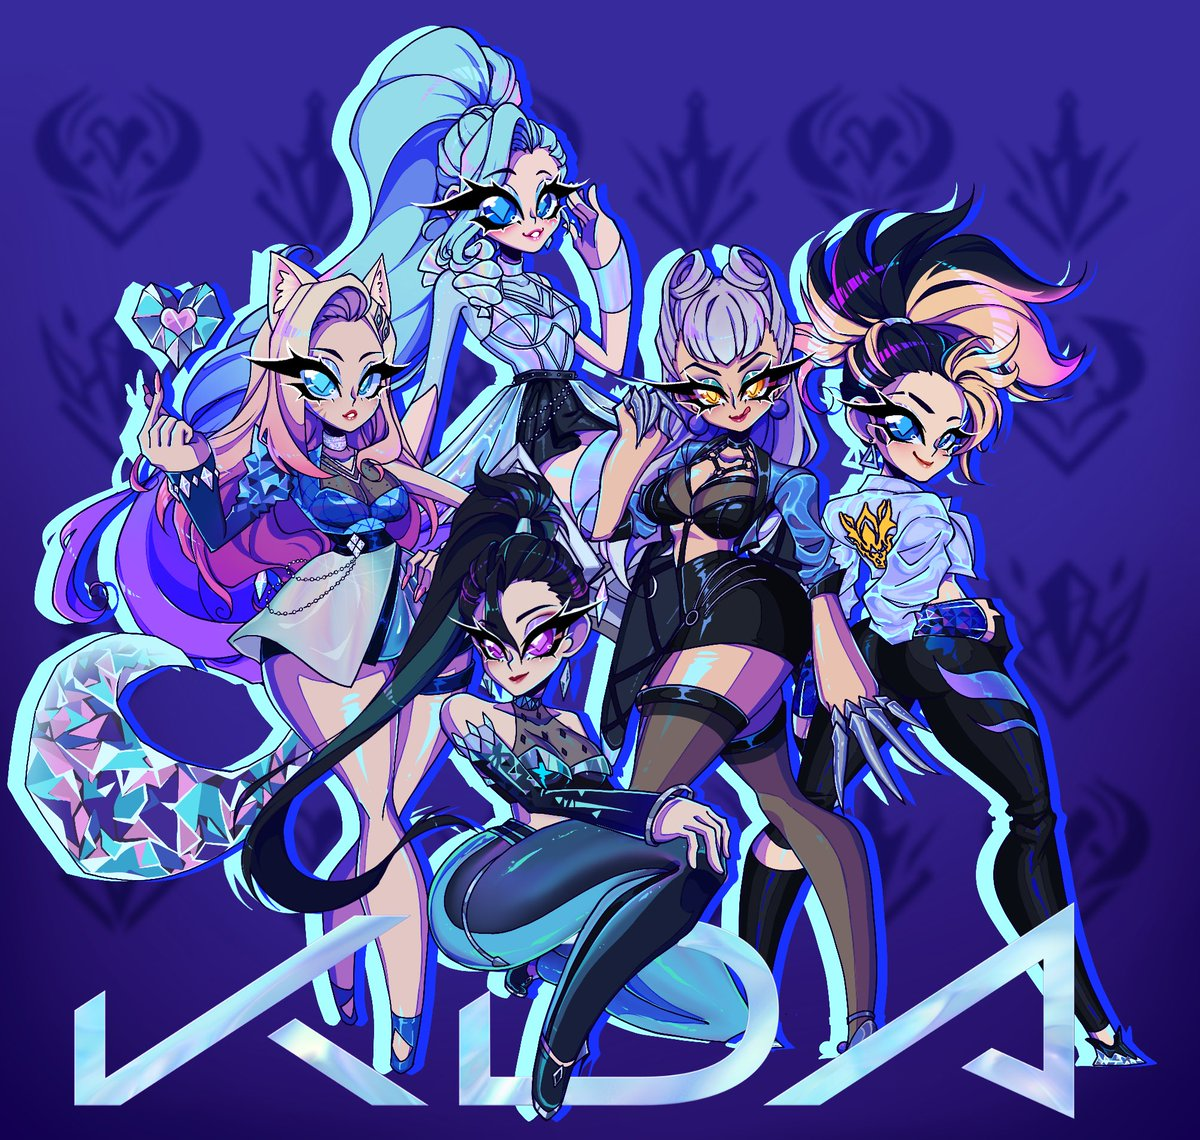 💎ALL/OUT💎 #KDAMORE #BEMORE @KDA_MUSIC https://t.co/69MR8LguQs